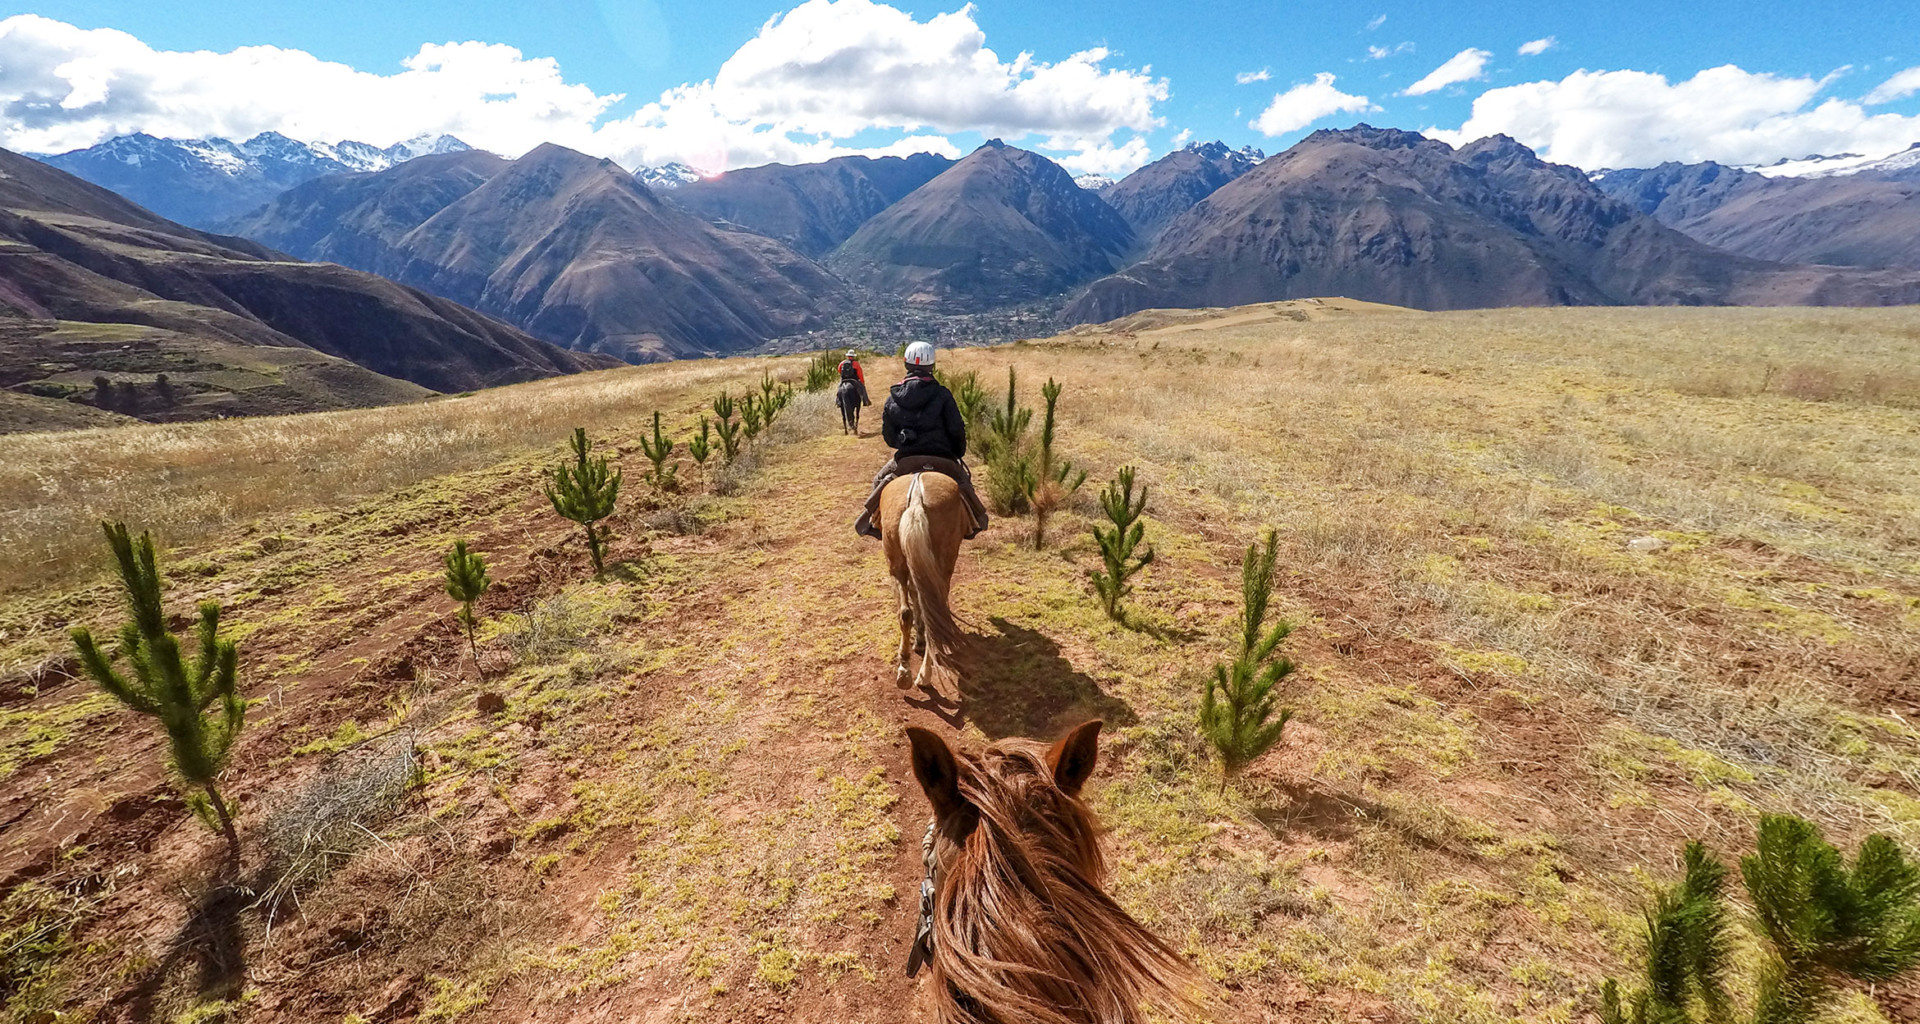 Stunning mountain views while travelers ride on horses through Peru